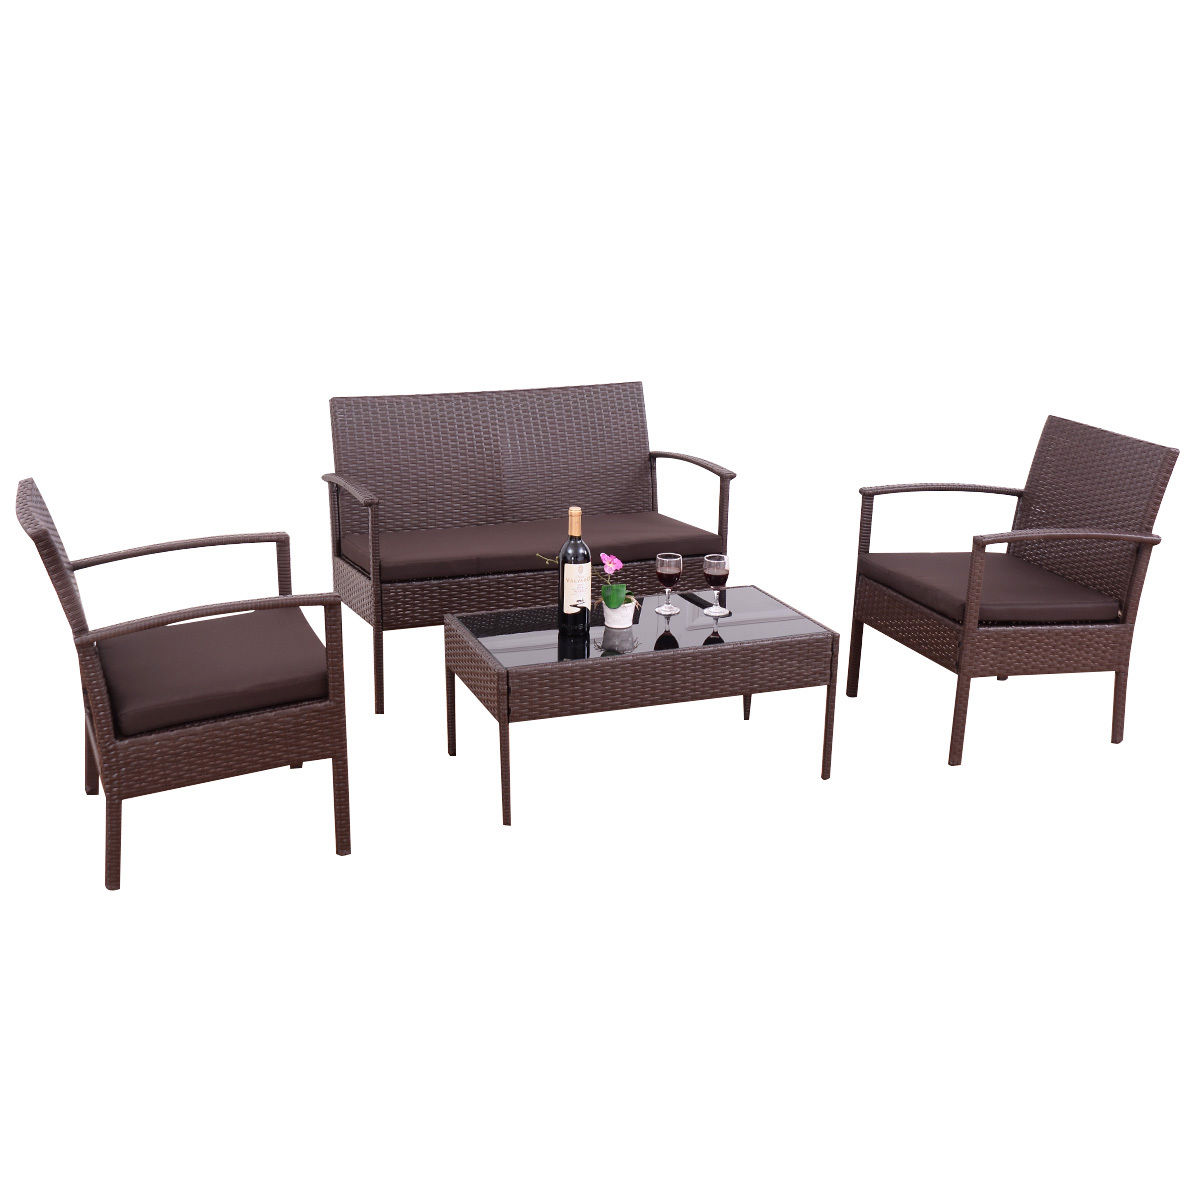 Best patio furniture sets clearance lawn small coaster sofa wicker garden yard